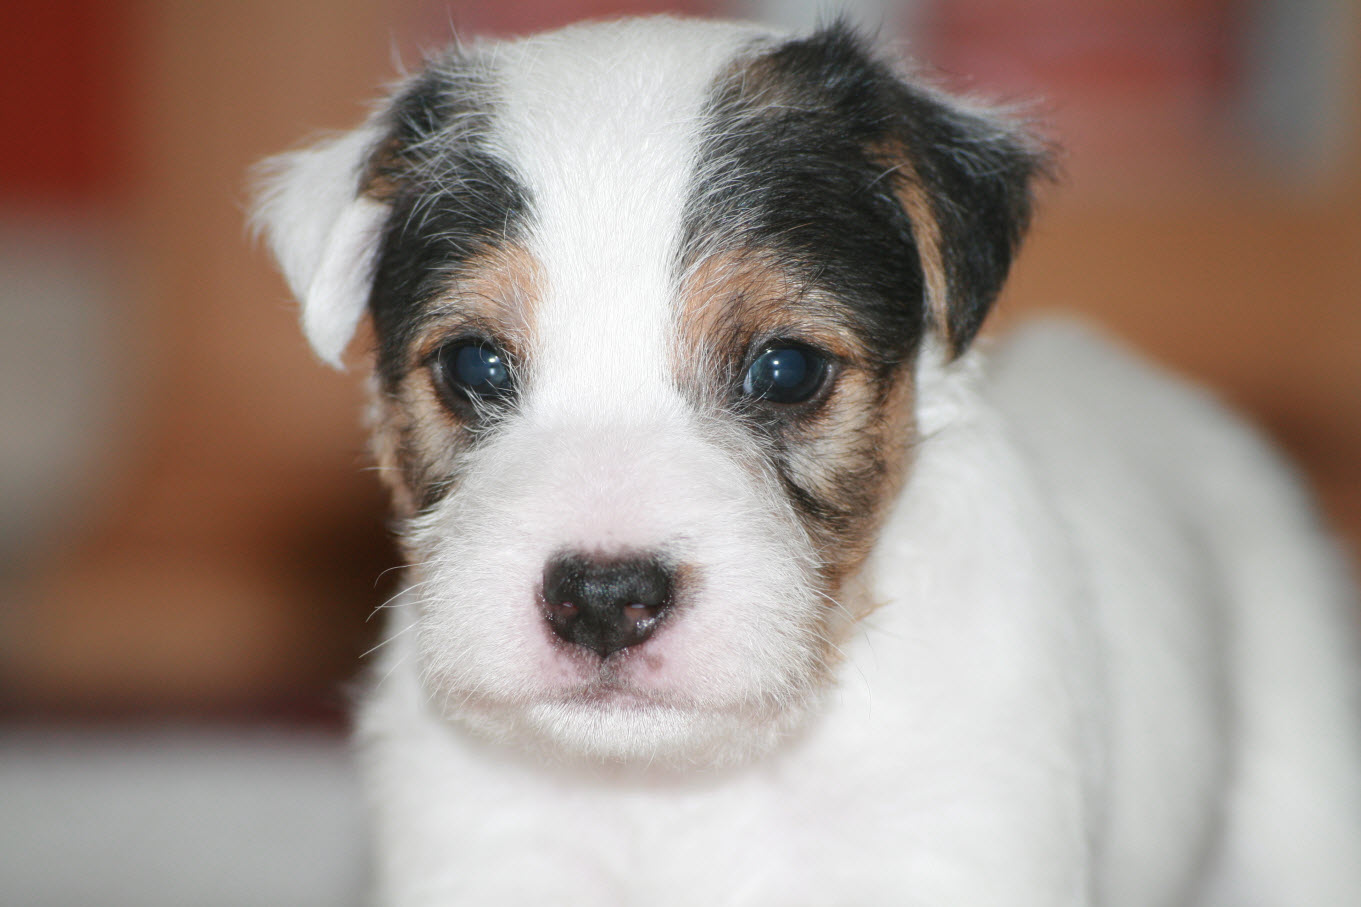 Parson Russell Terrier Growth Pin Dog Skin Diseases ...